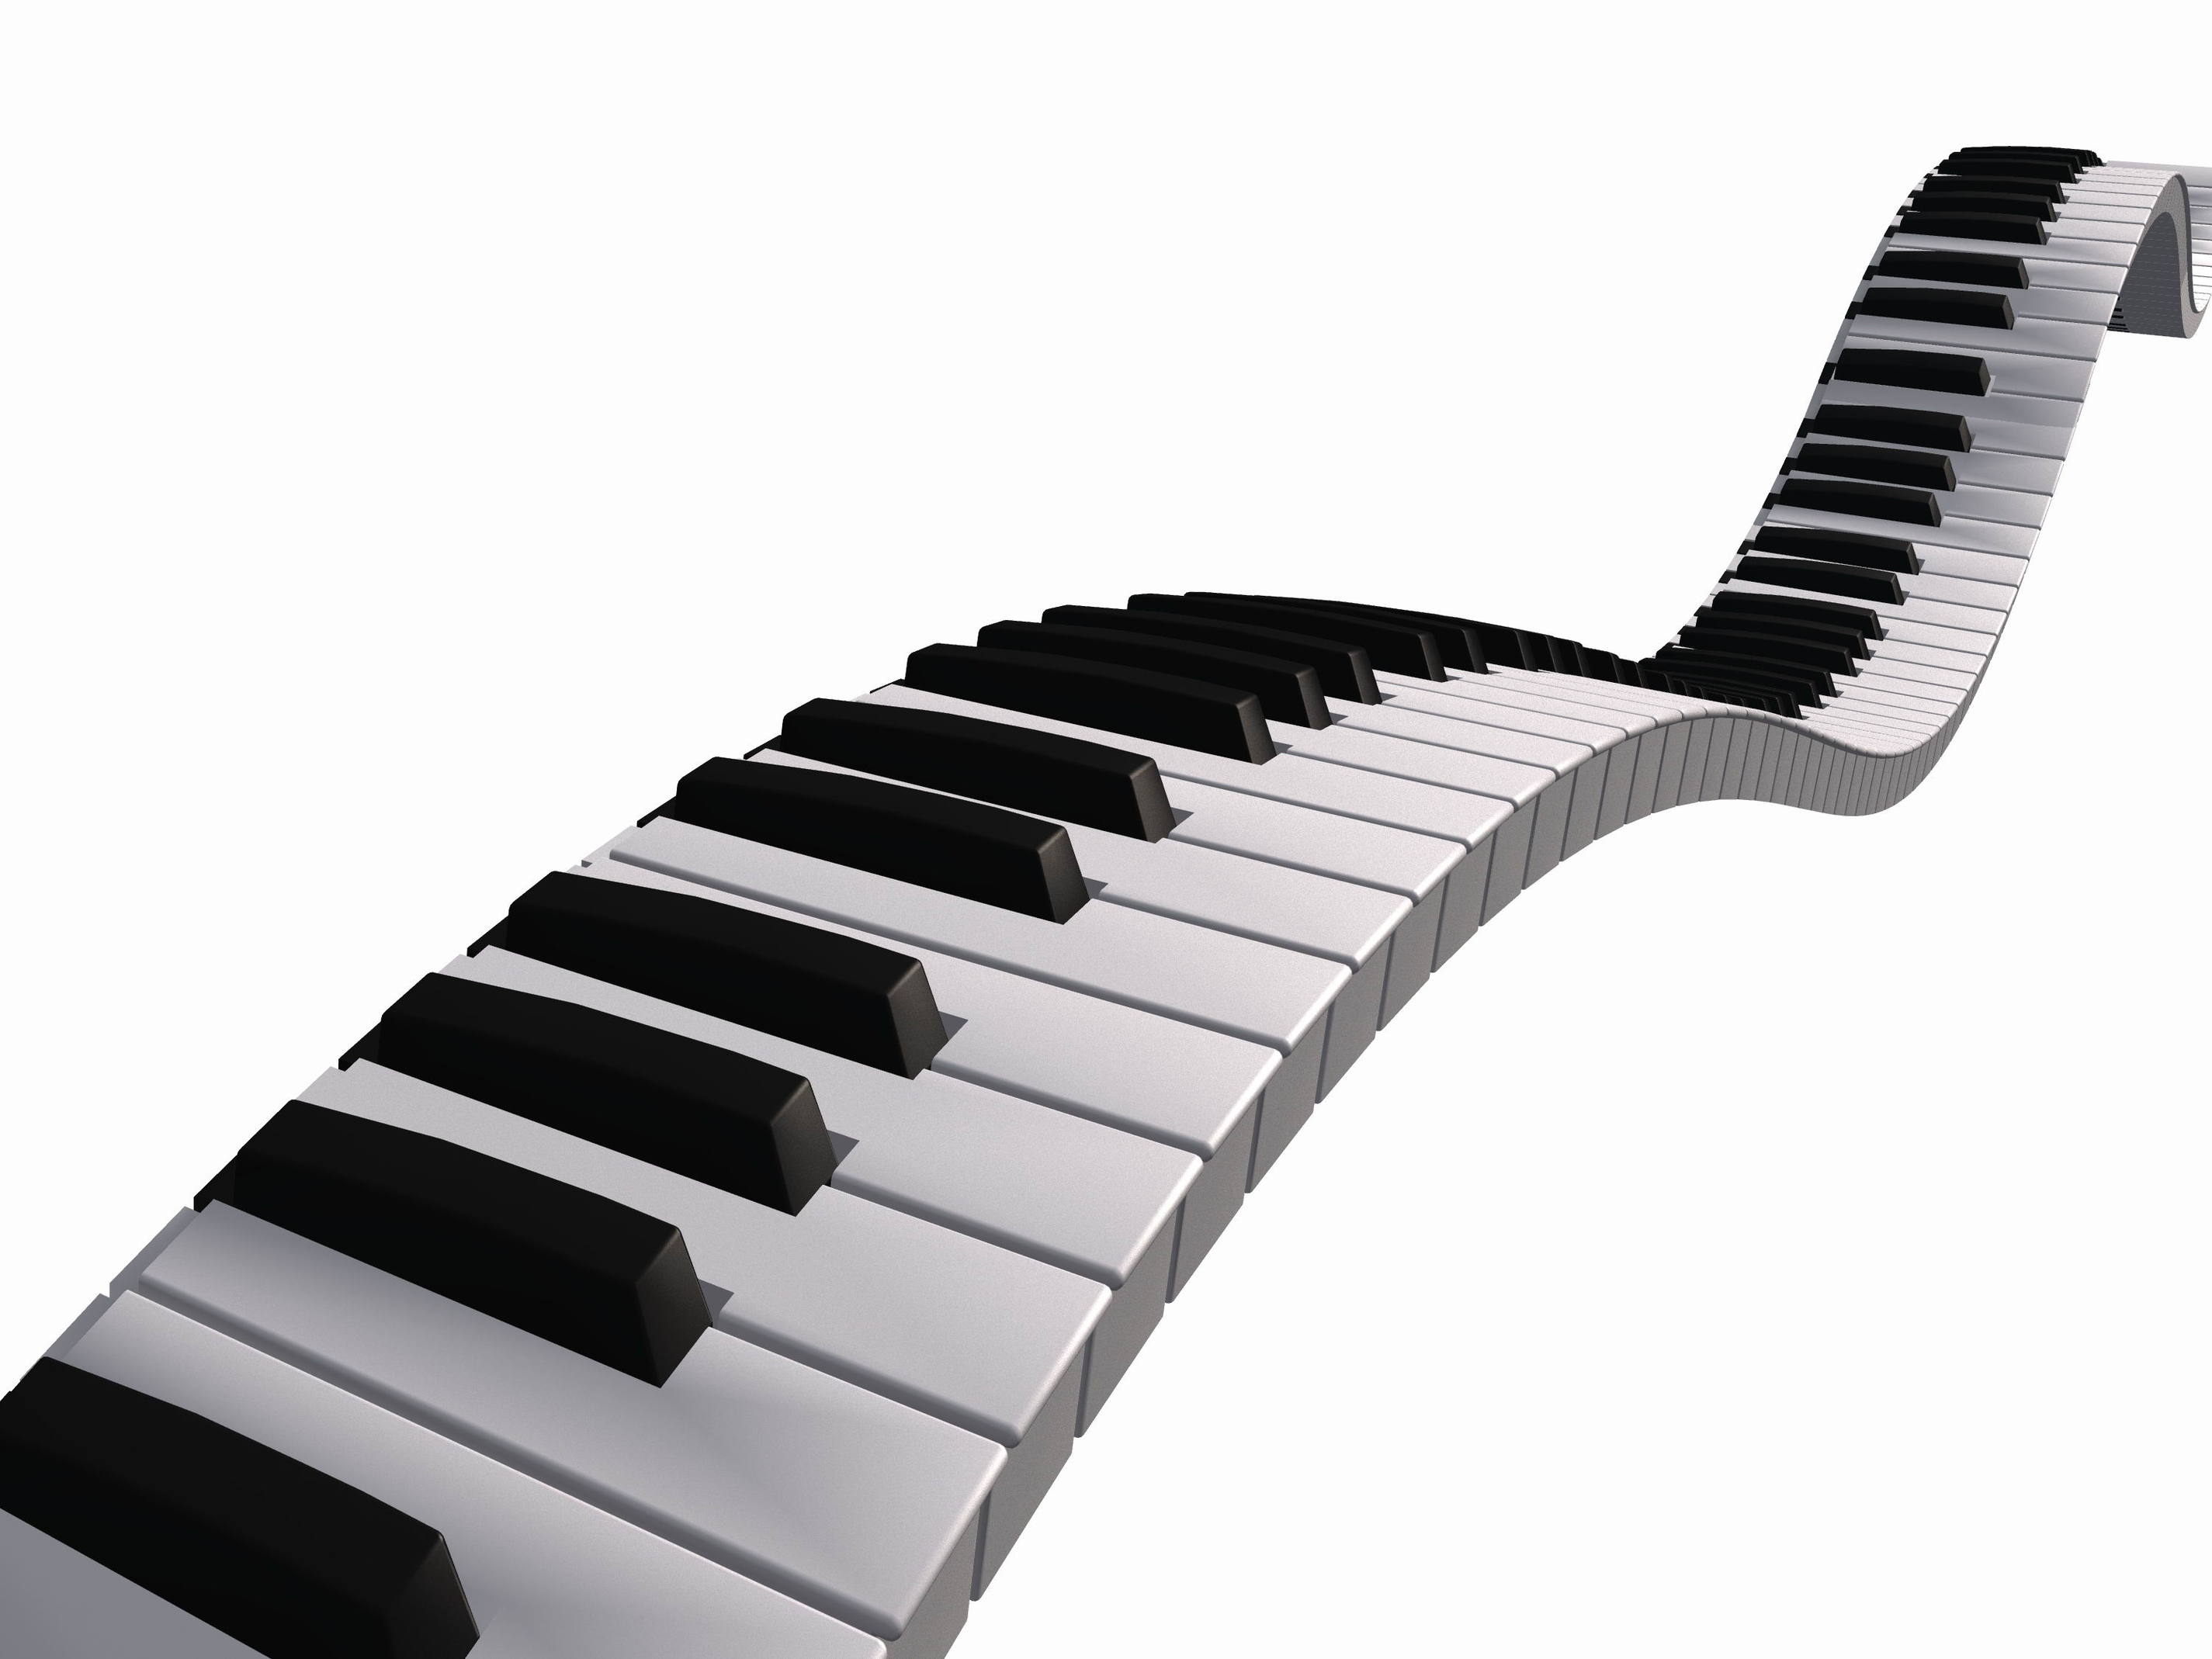 2850x2138 Piano Keys Clip Art